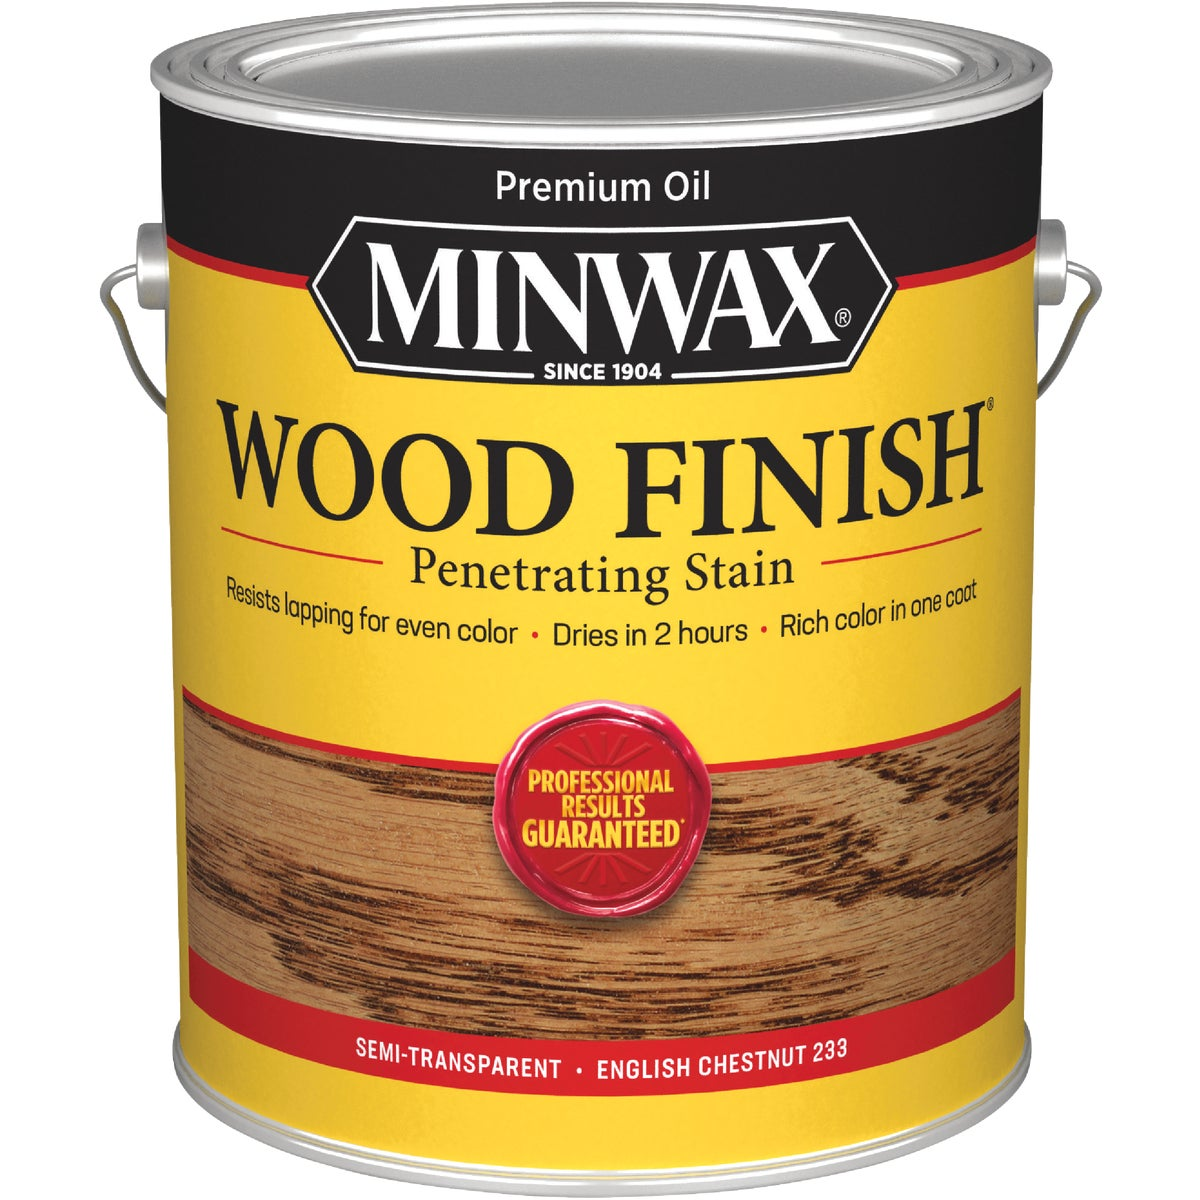 ENGL CHESTNUT WOOD STAIN - 71044 by Minwax Company